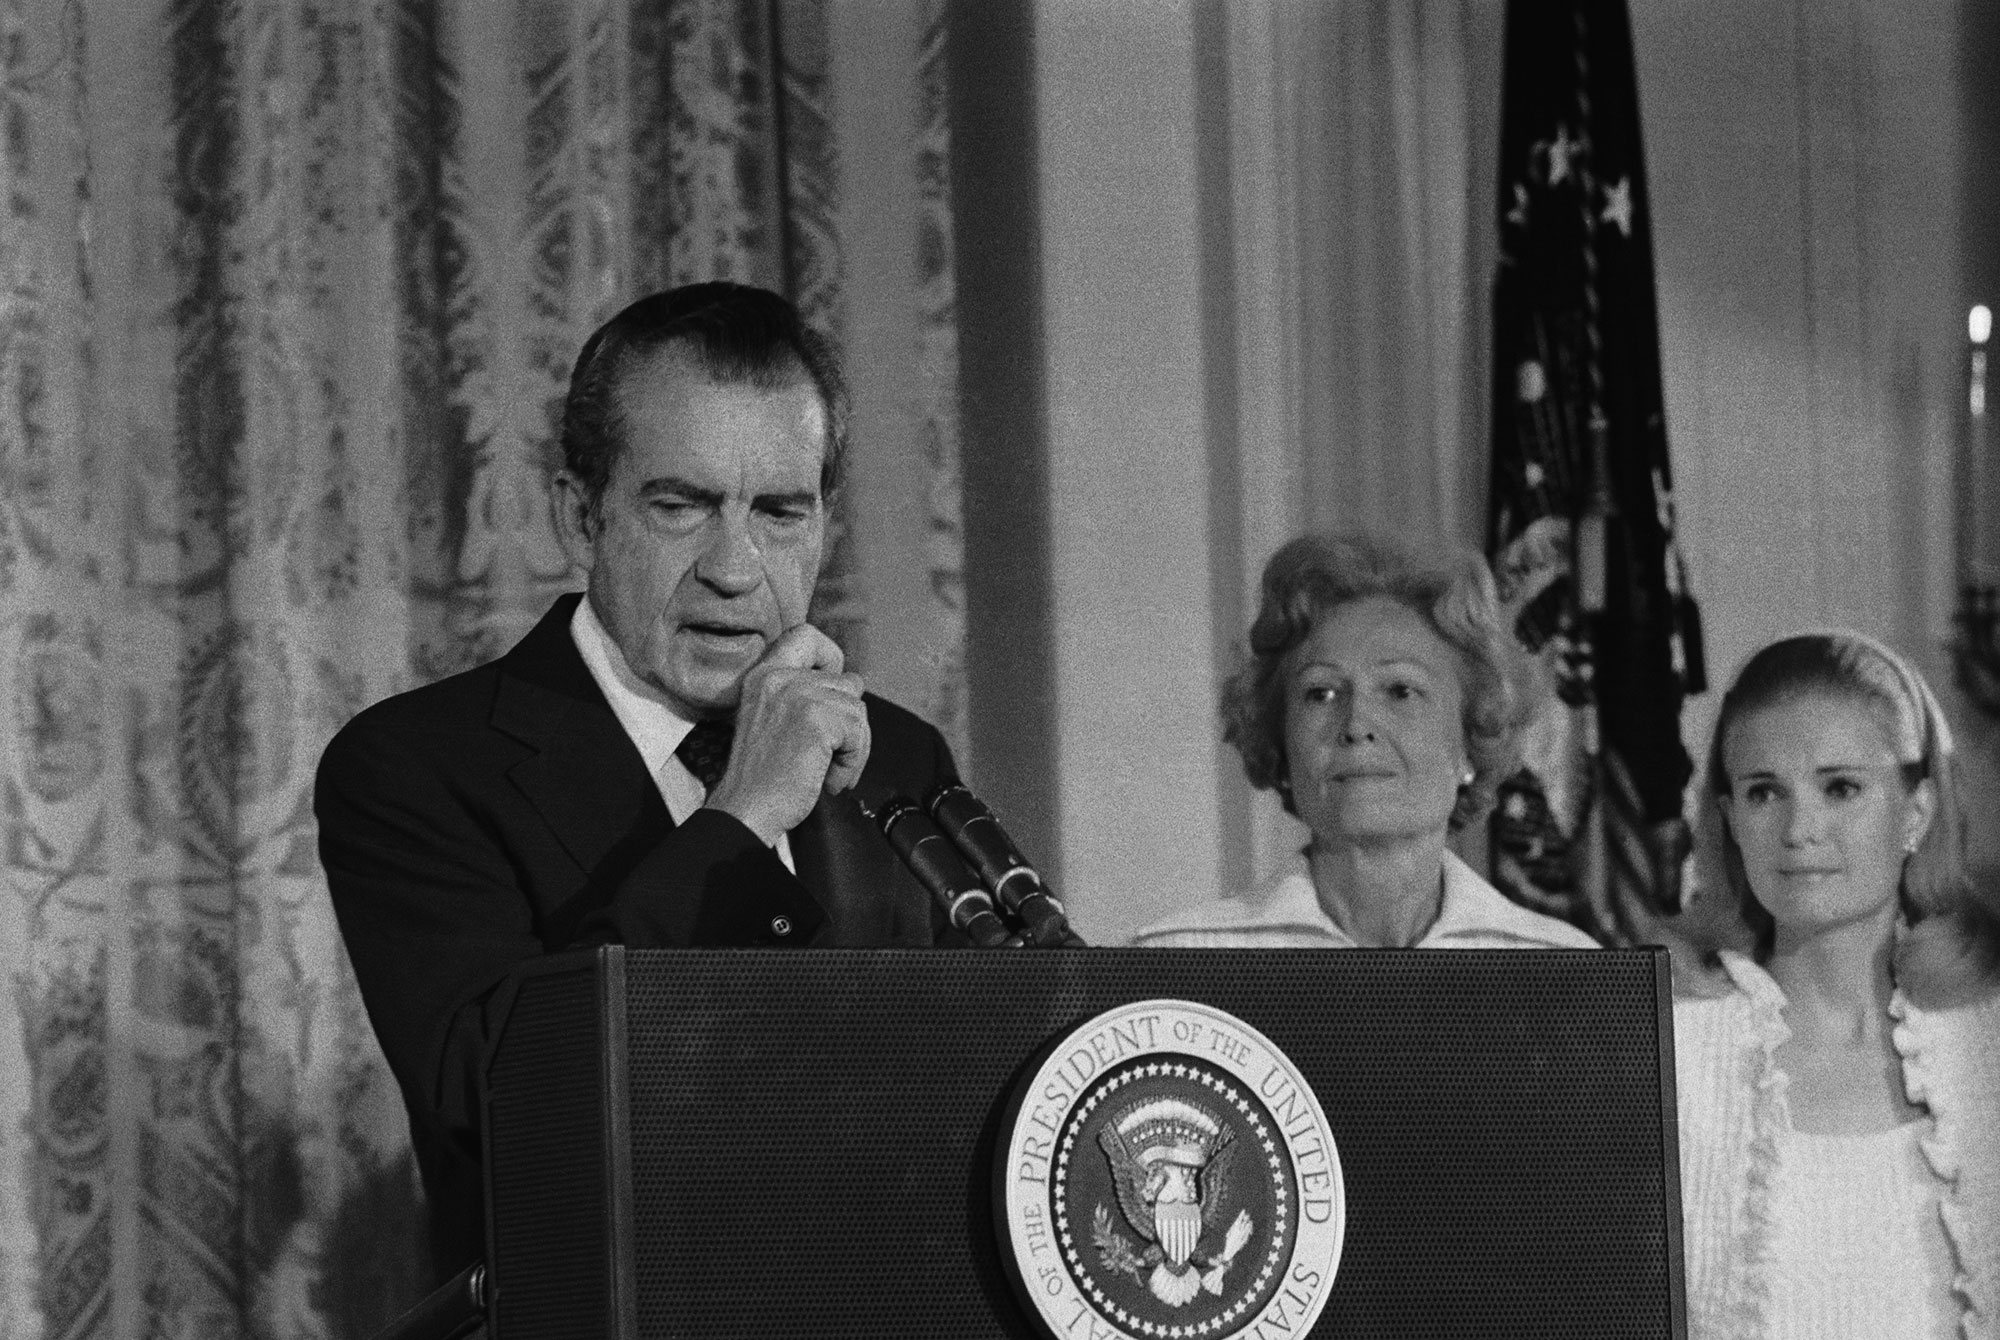 watergate scandal and president nixon essay